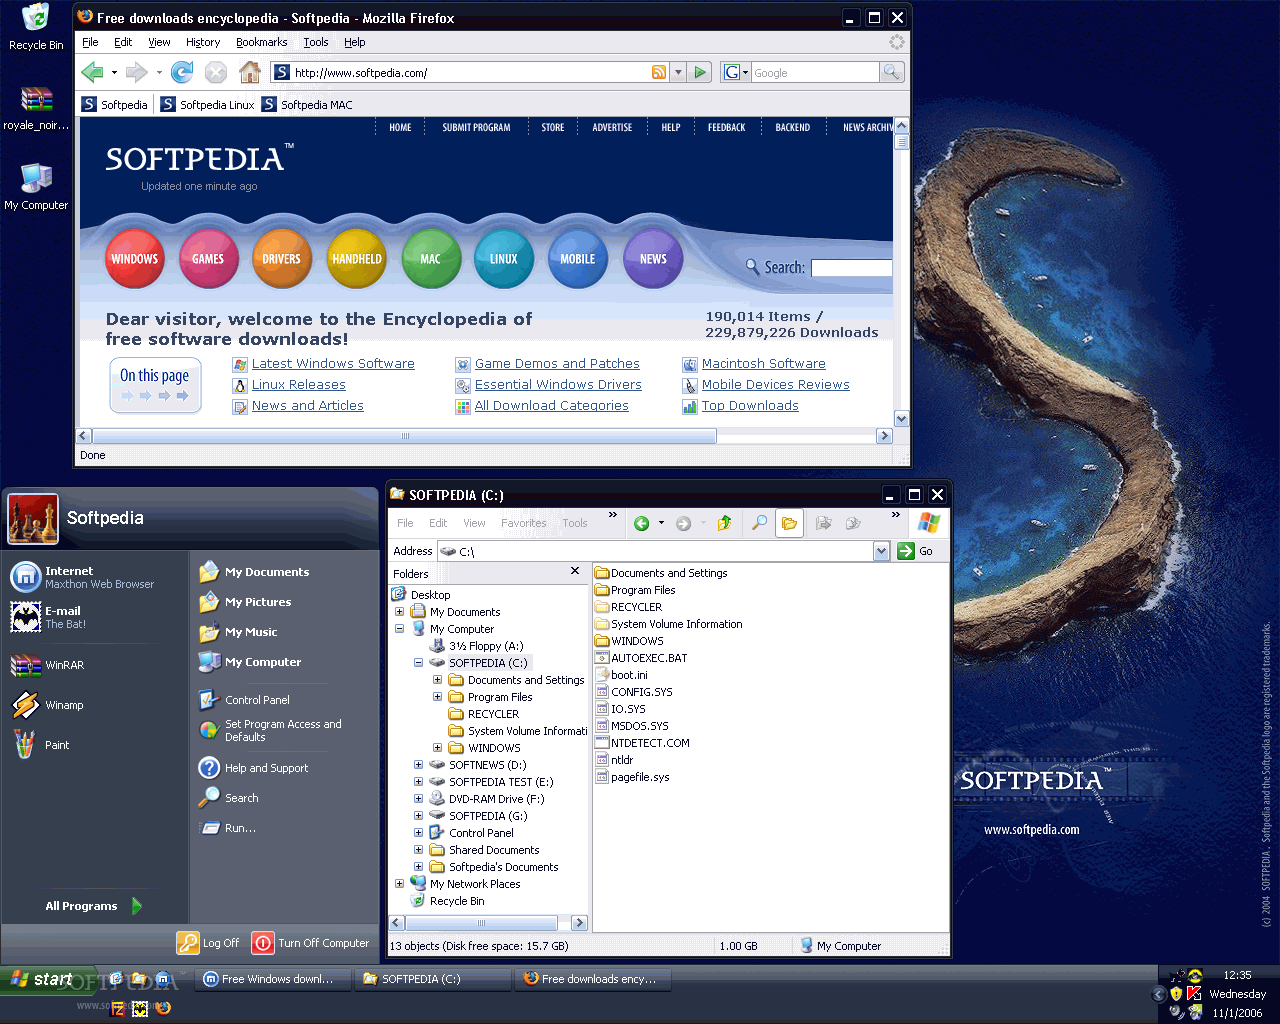 http://www.softpedia.com/screenshots/Royale-Noir-Theme_1.png